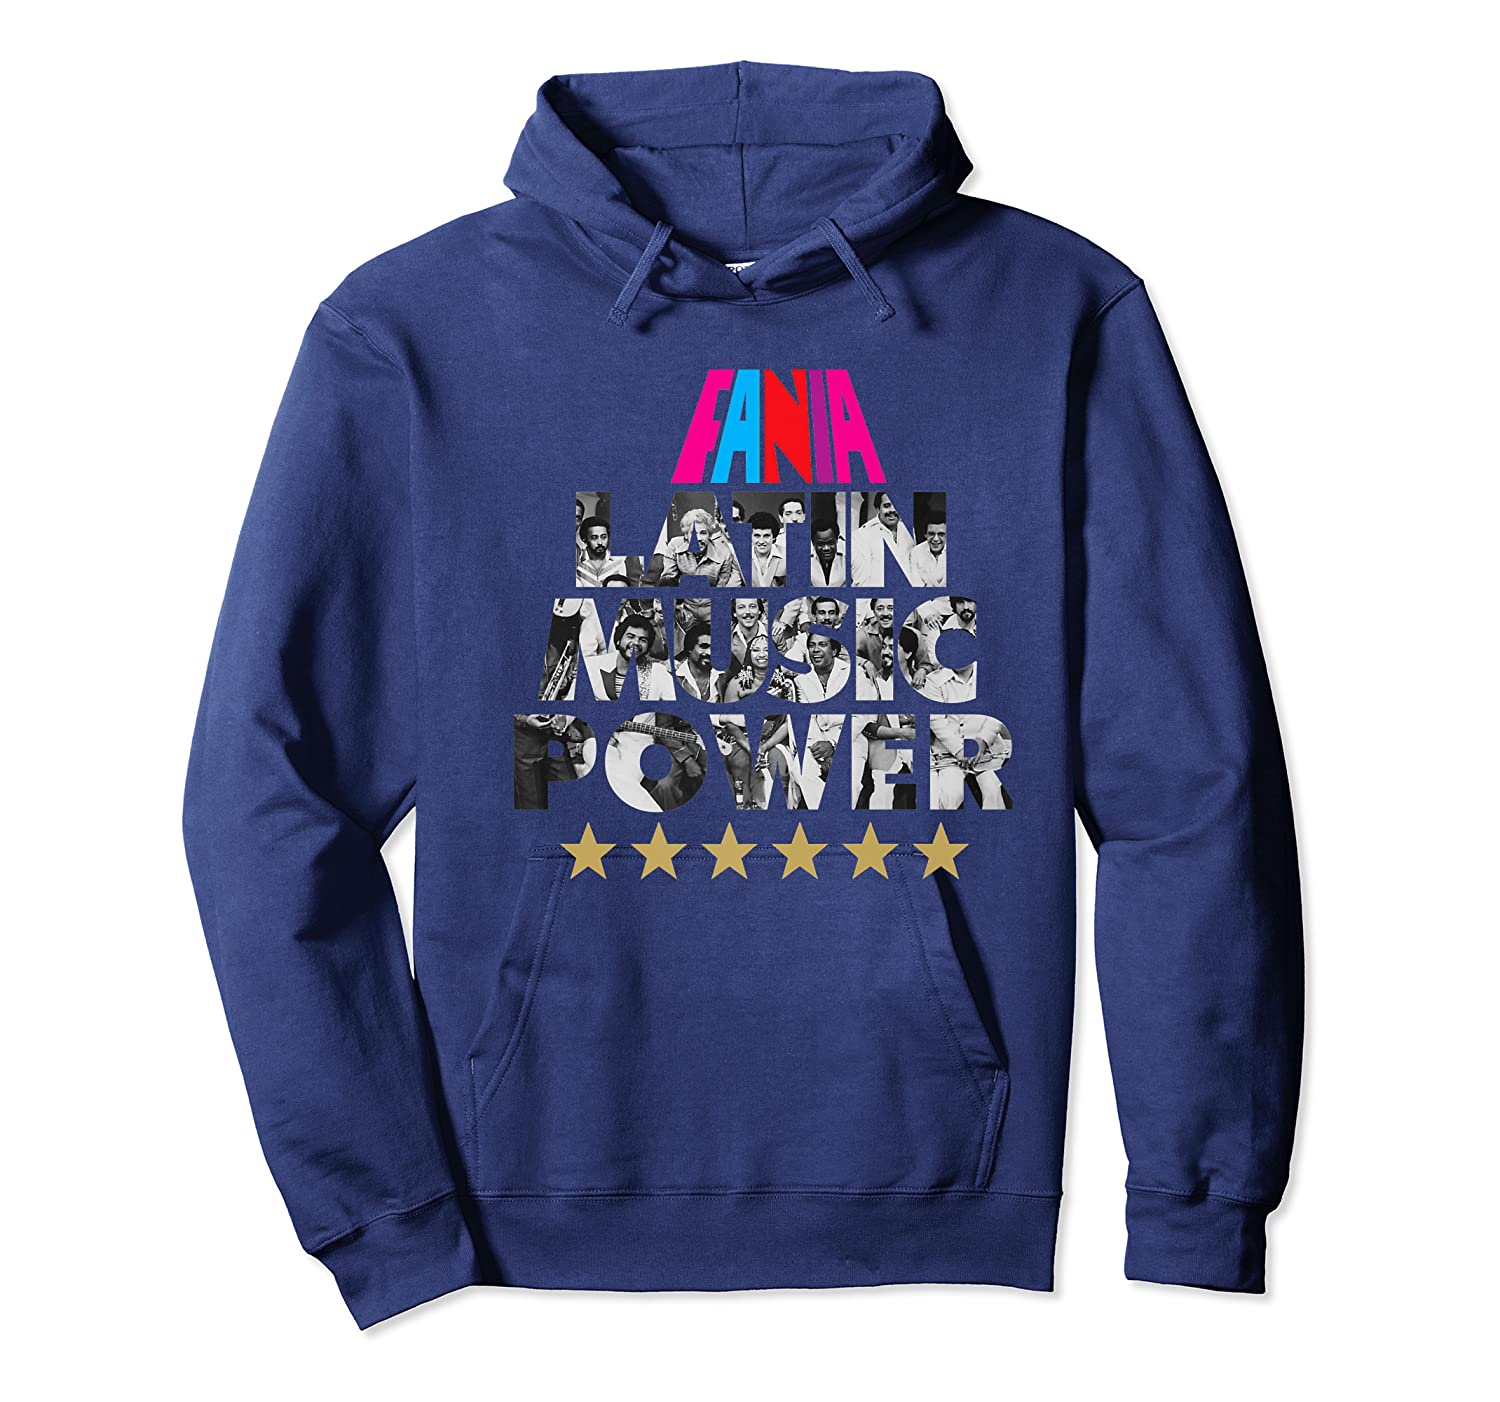 Fania All Star Latin Power Shirts Unisex Pullover Hoodie